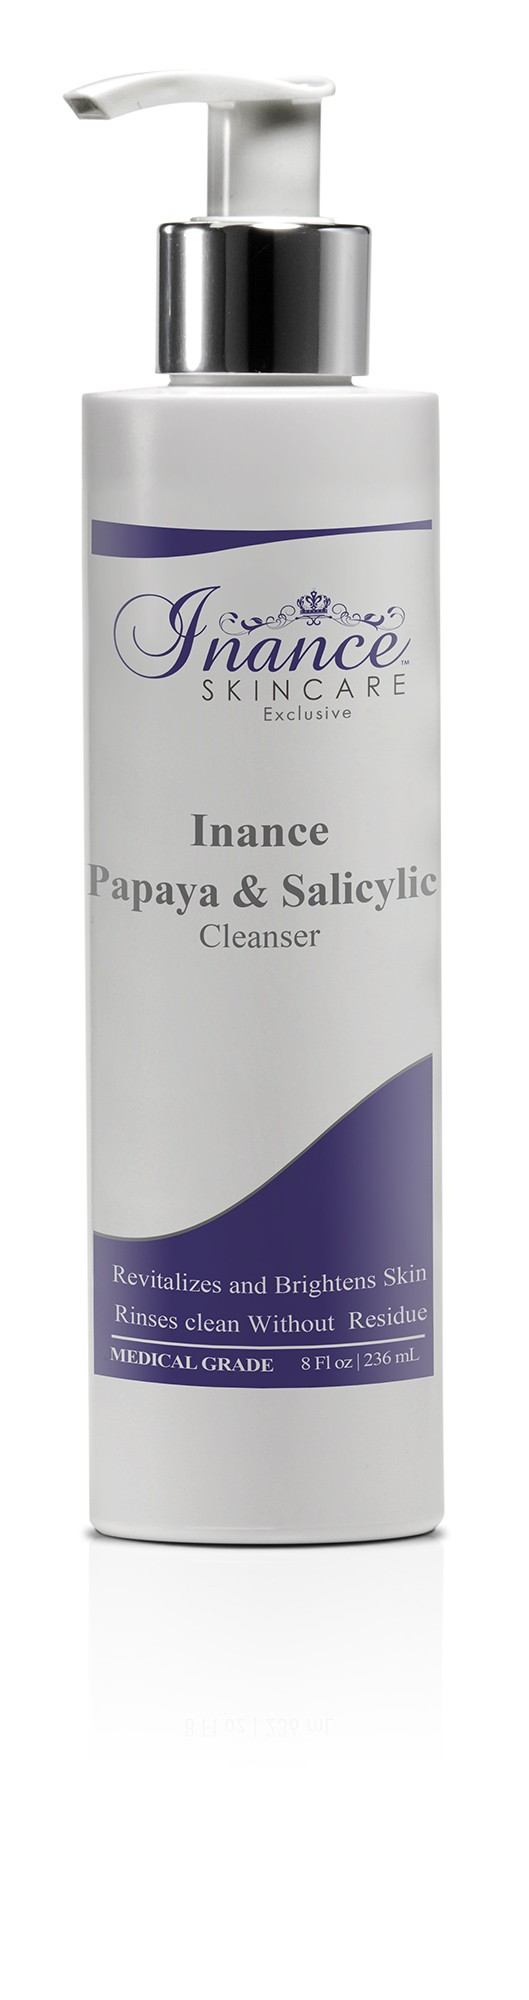 Inance Exclusive Papaya & Salicylic Cleanser 8oz